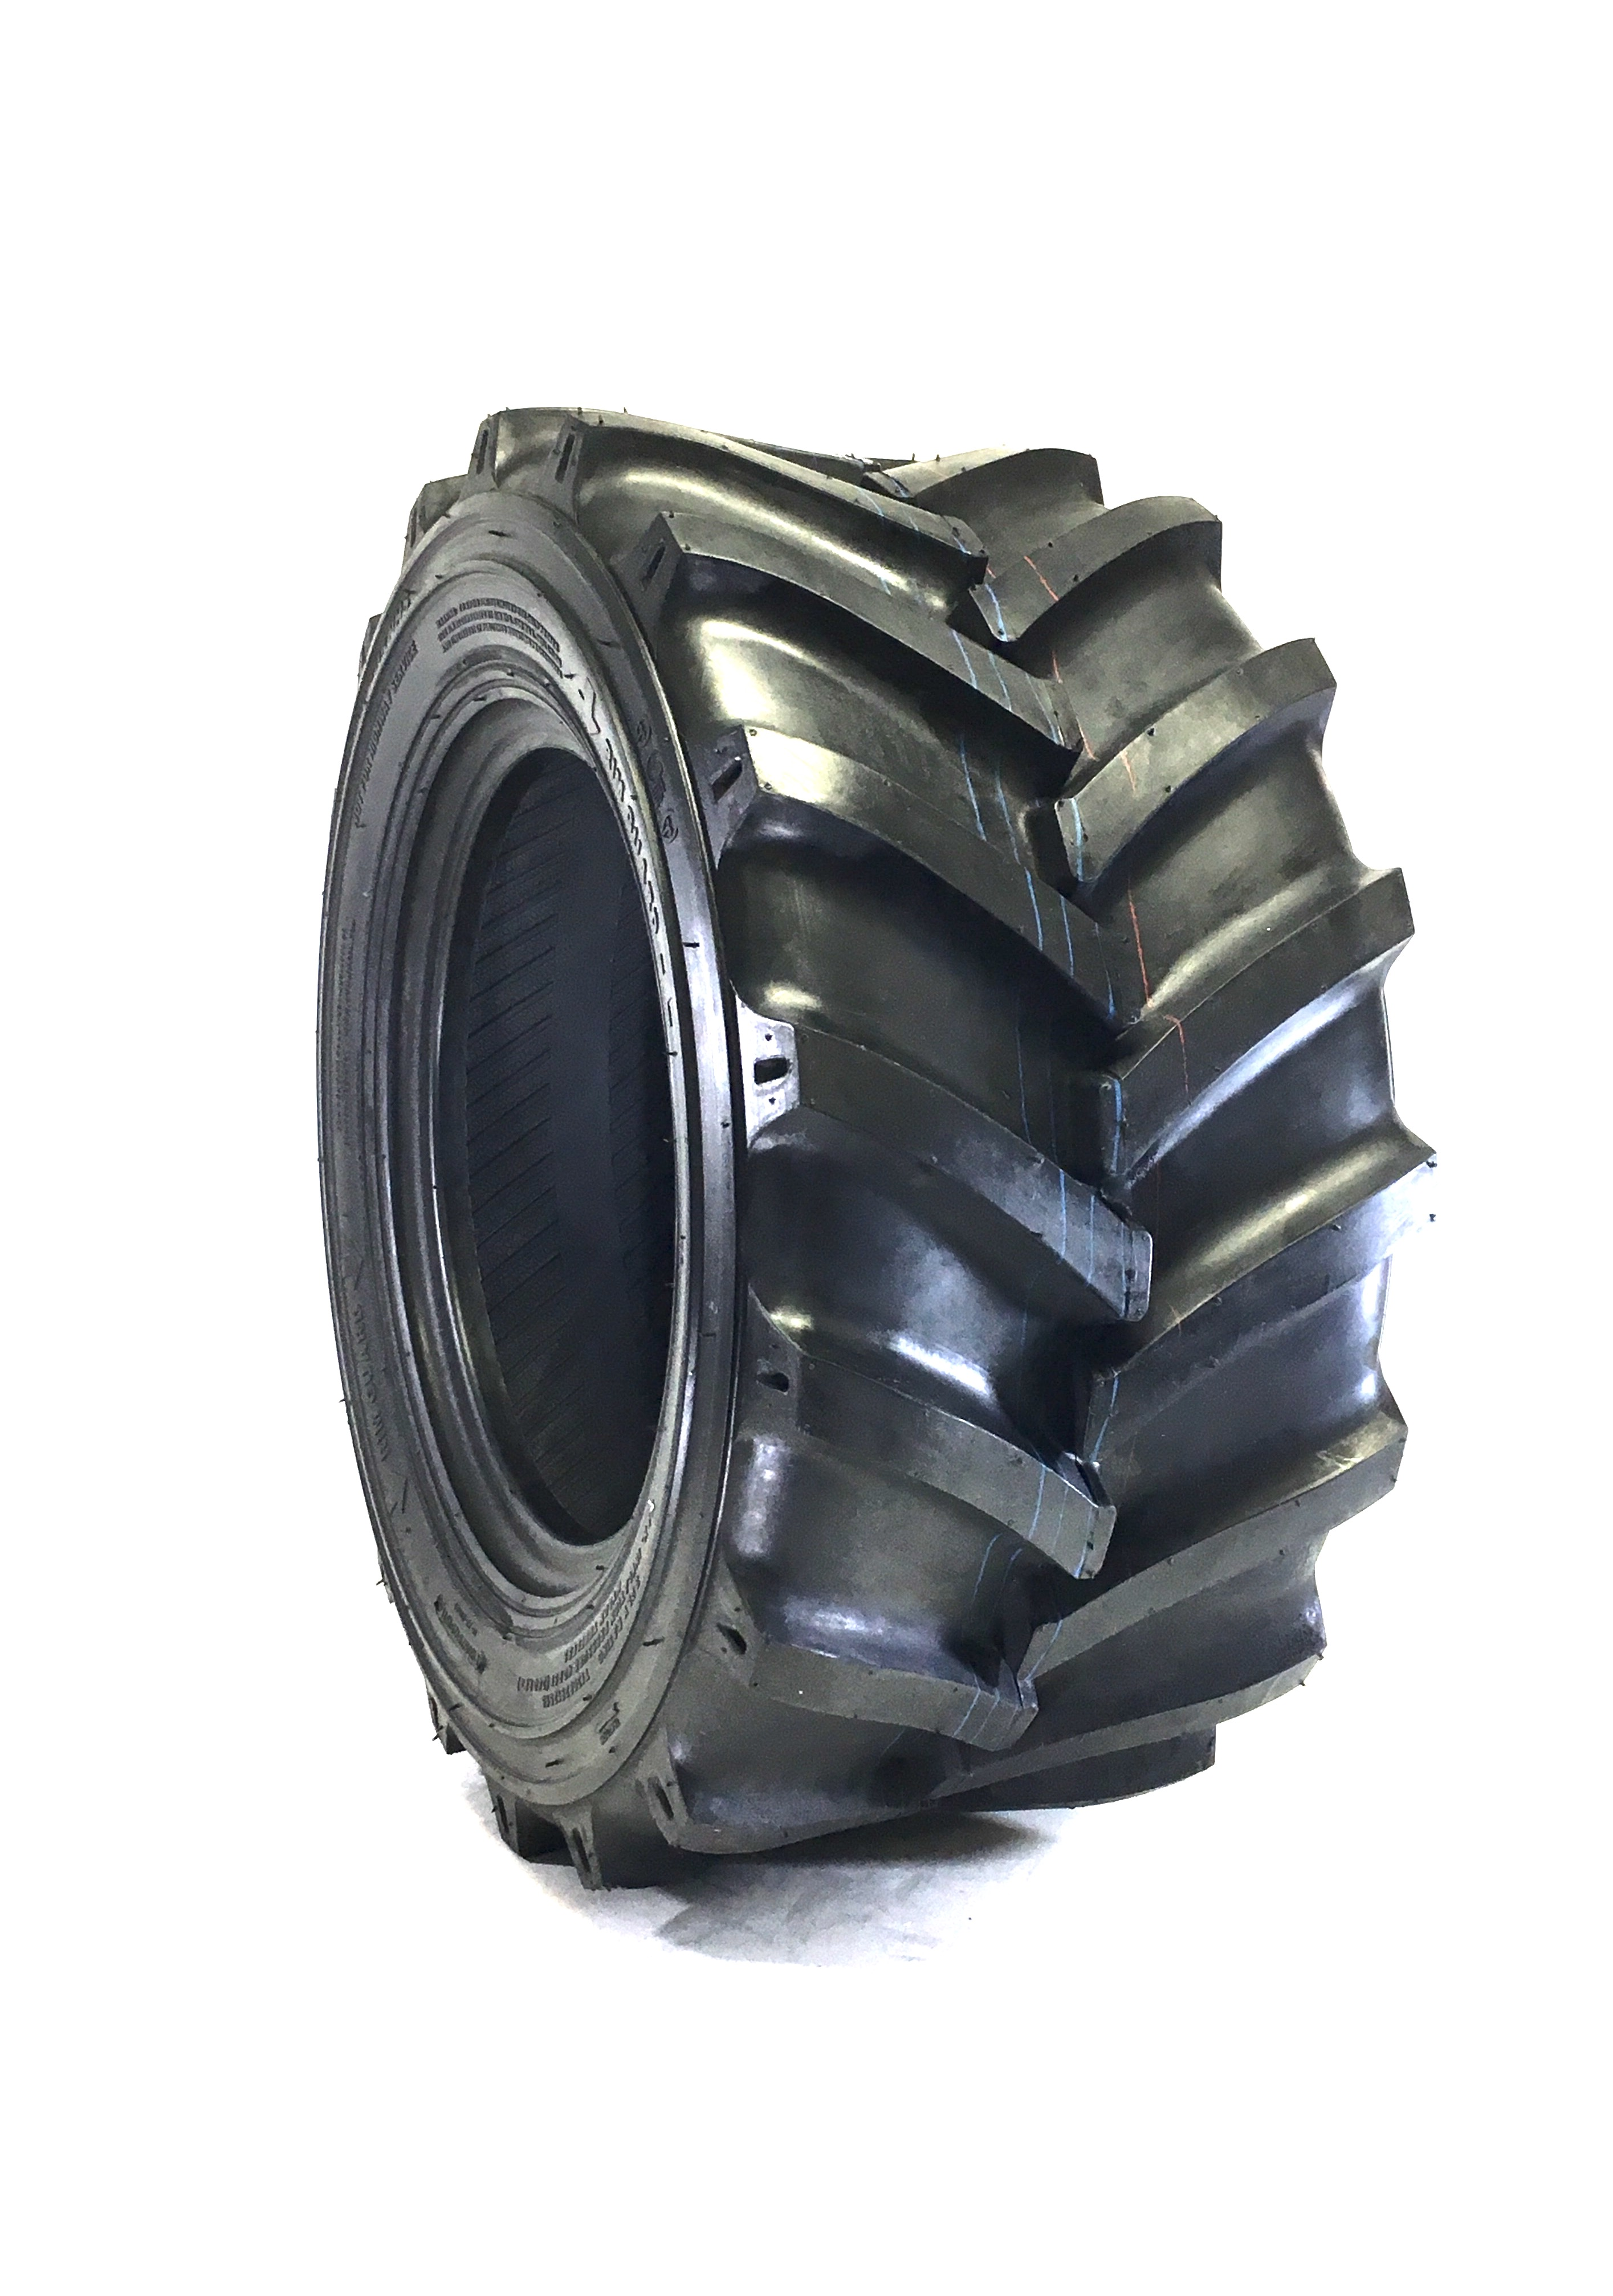 29x12.50-15 traction master